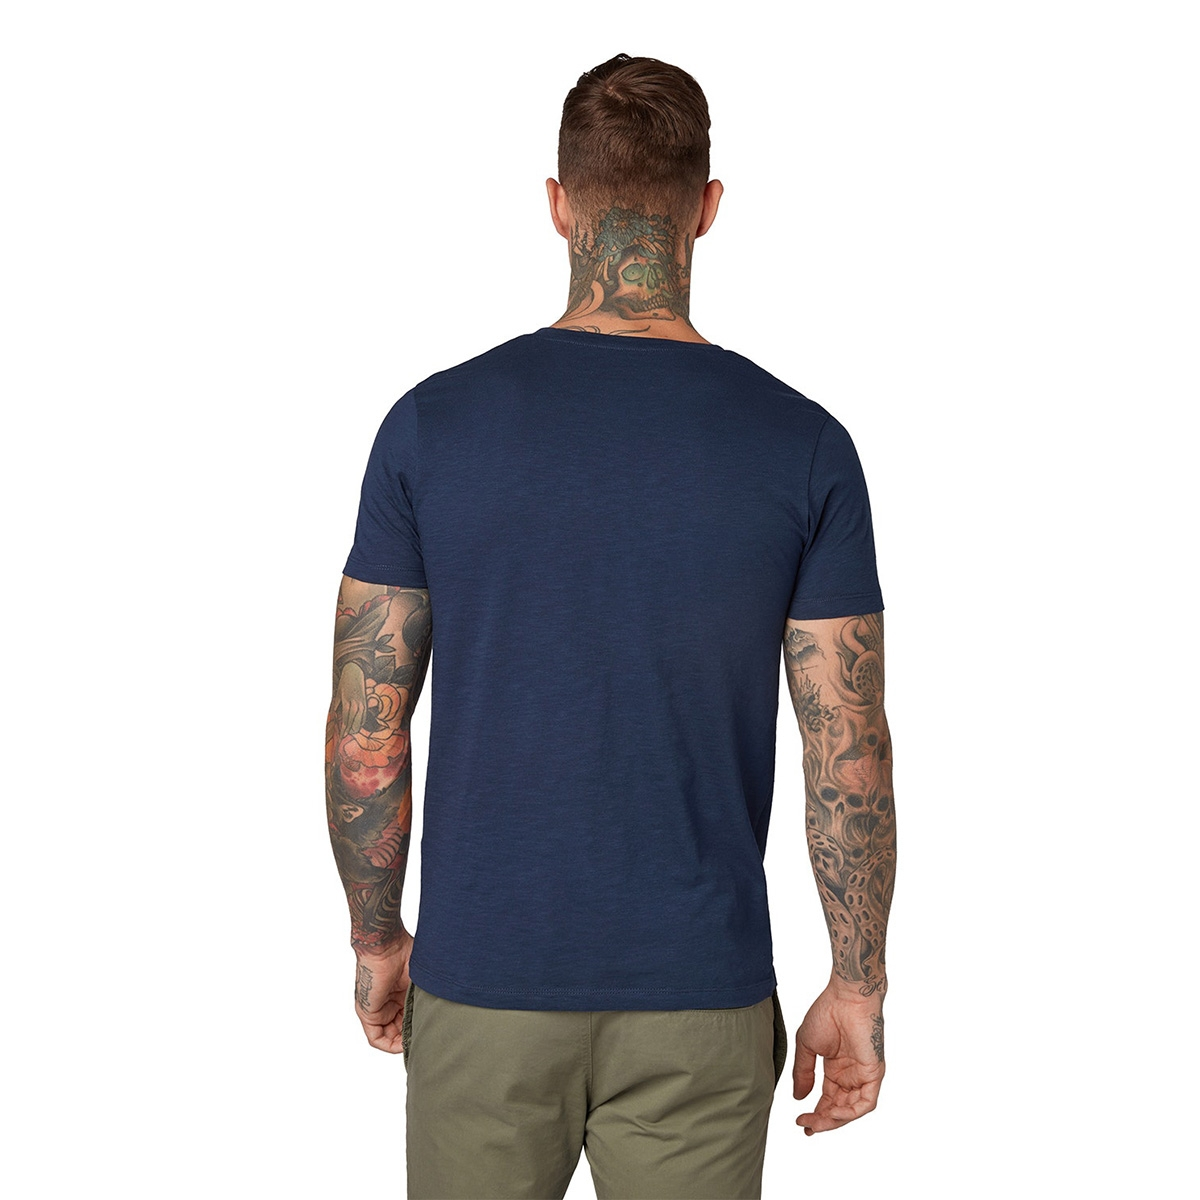 t shirt met fotoprint 1011382xx12 tom tailor t-shirt 10915